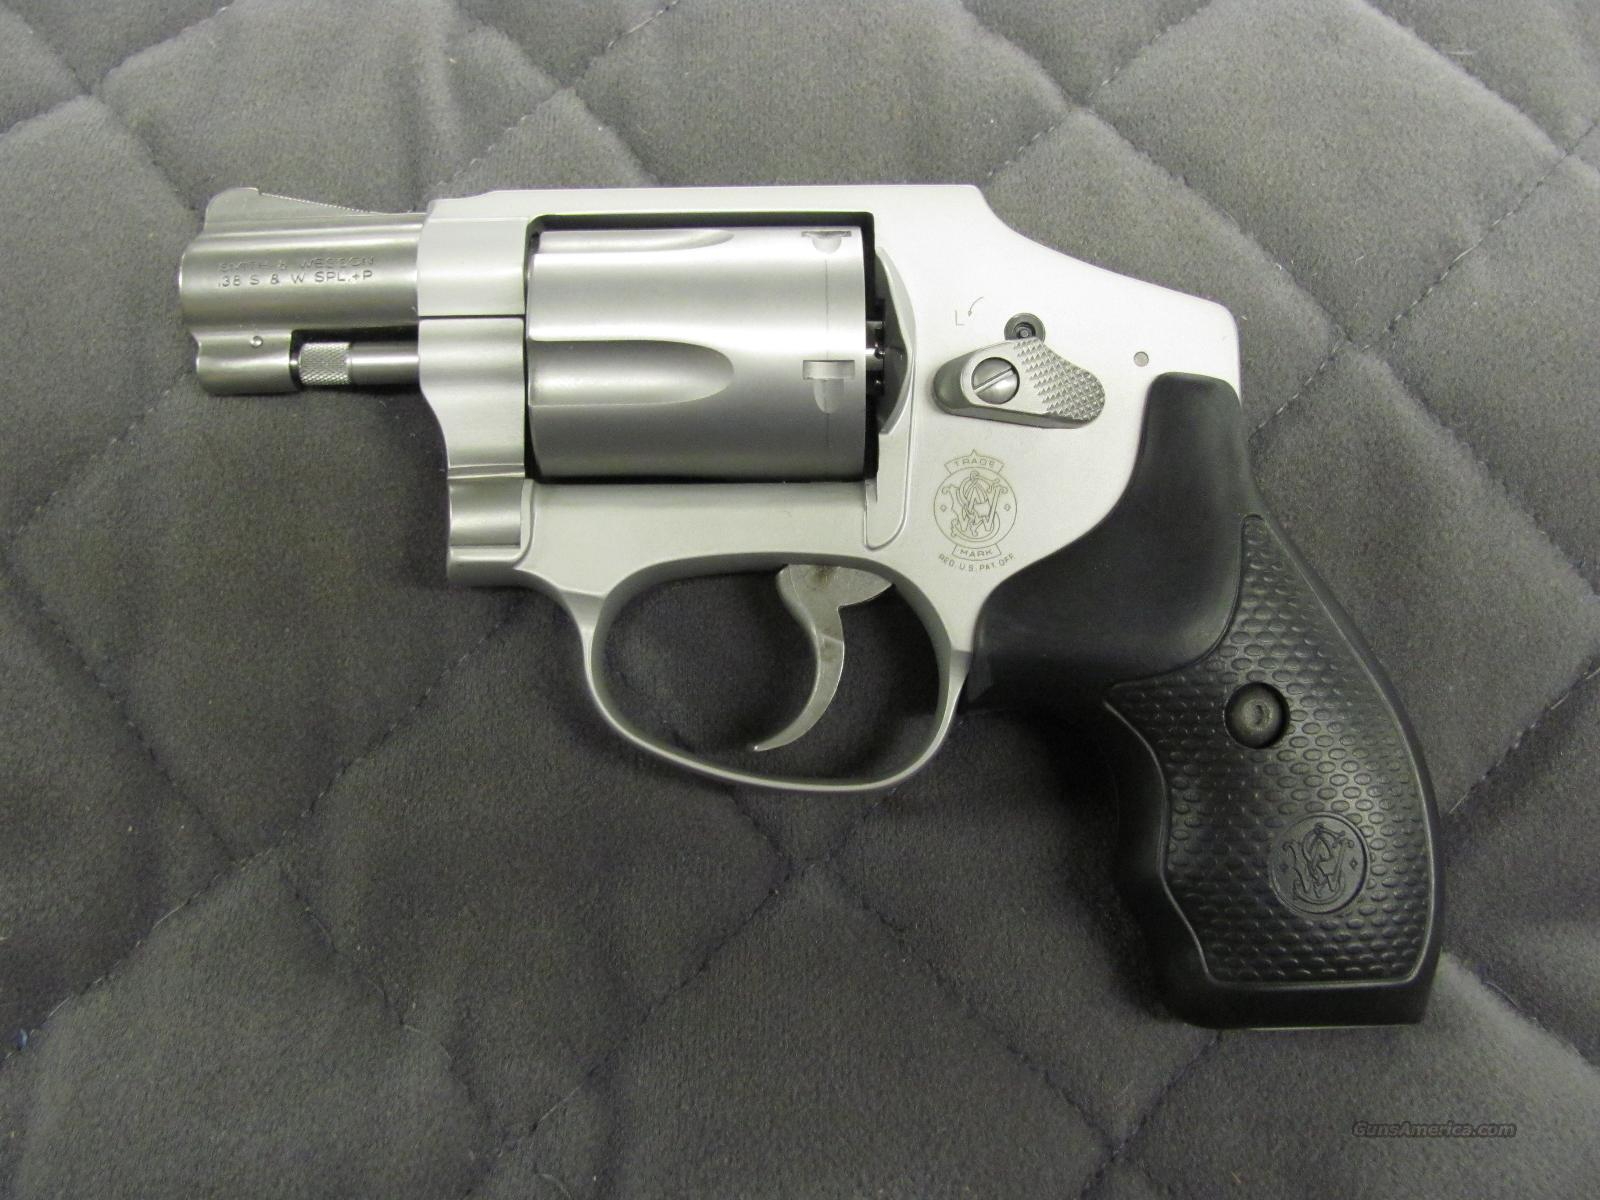 Smith & Wesson Model 642 38 special  **NEW** 163810  Guns > Pistols > Smith & Wesson Revolvers > Pocket Pistols